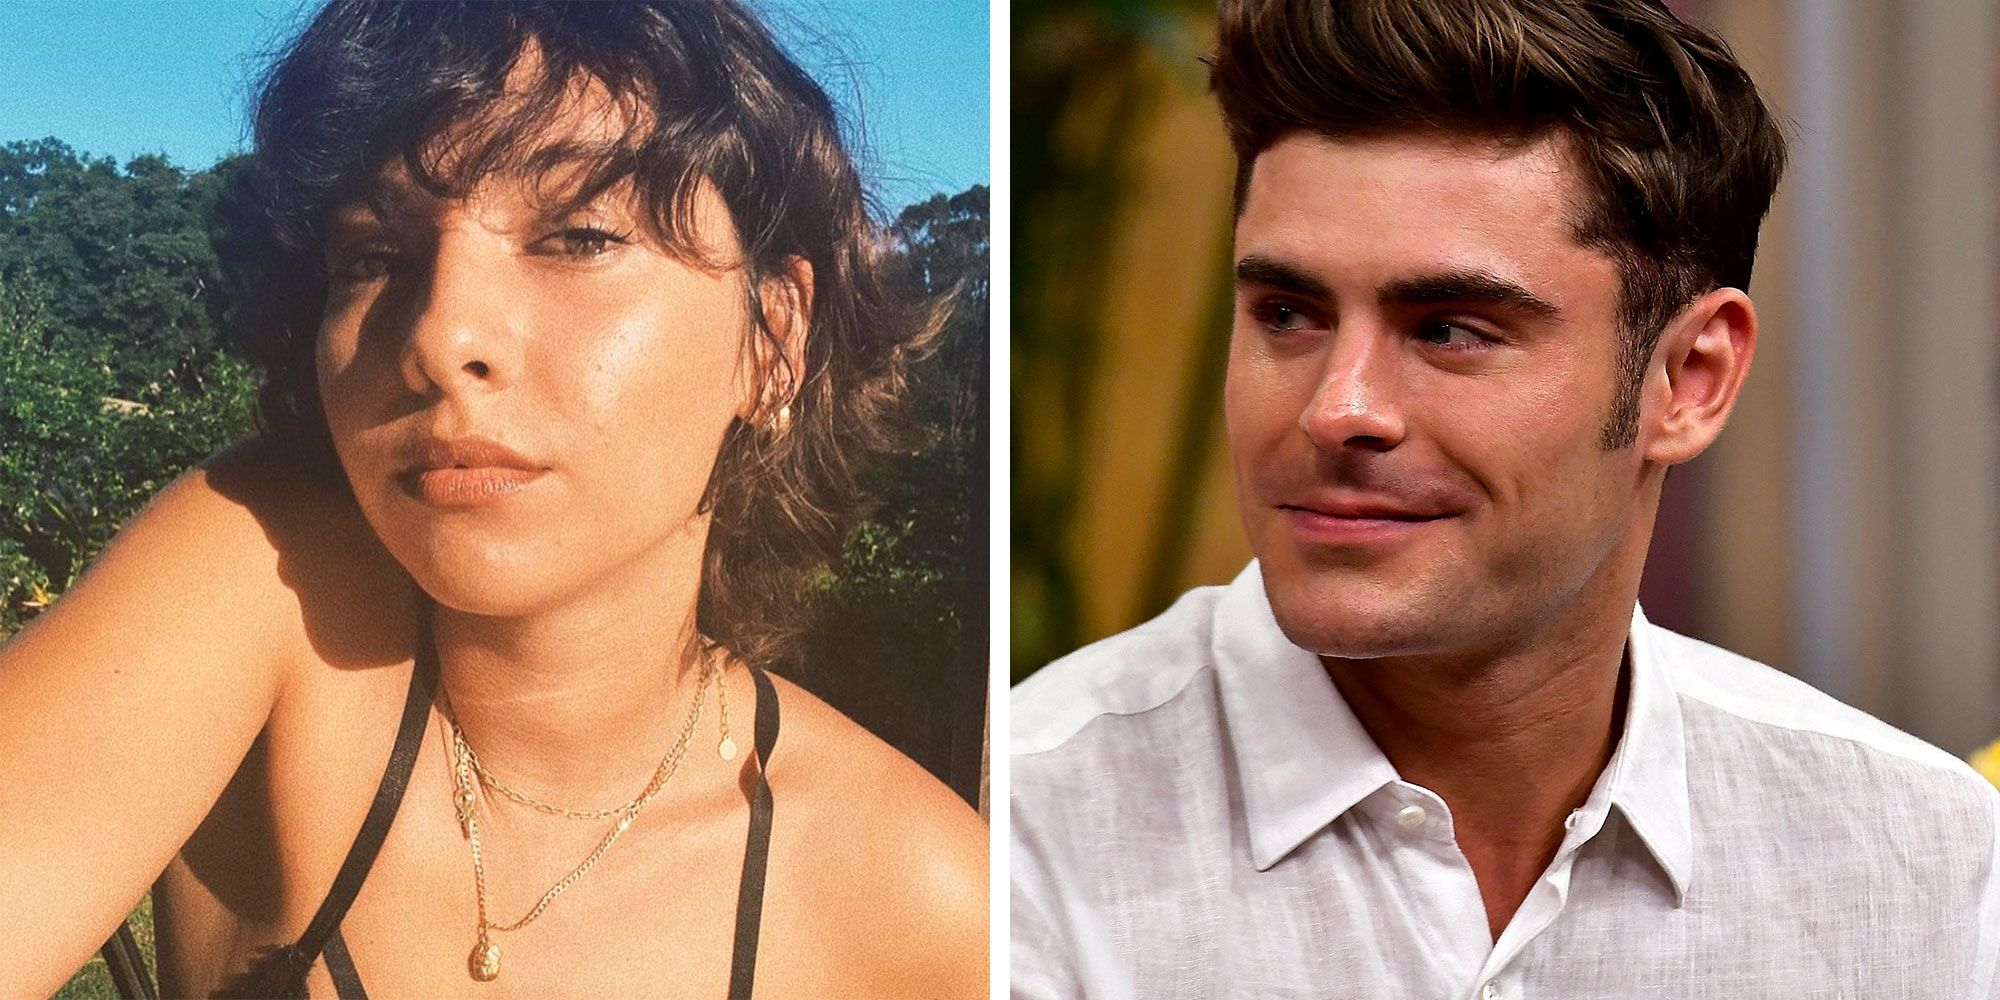 Zac Efron And Vanessa Valladares Are No Longer An Item – Insider Details!